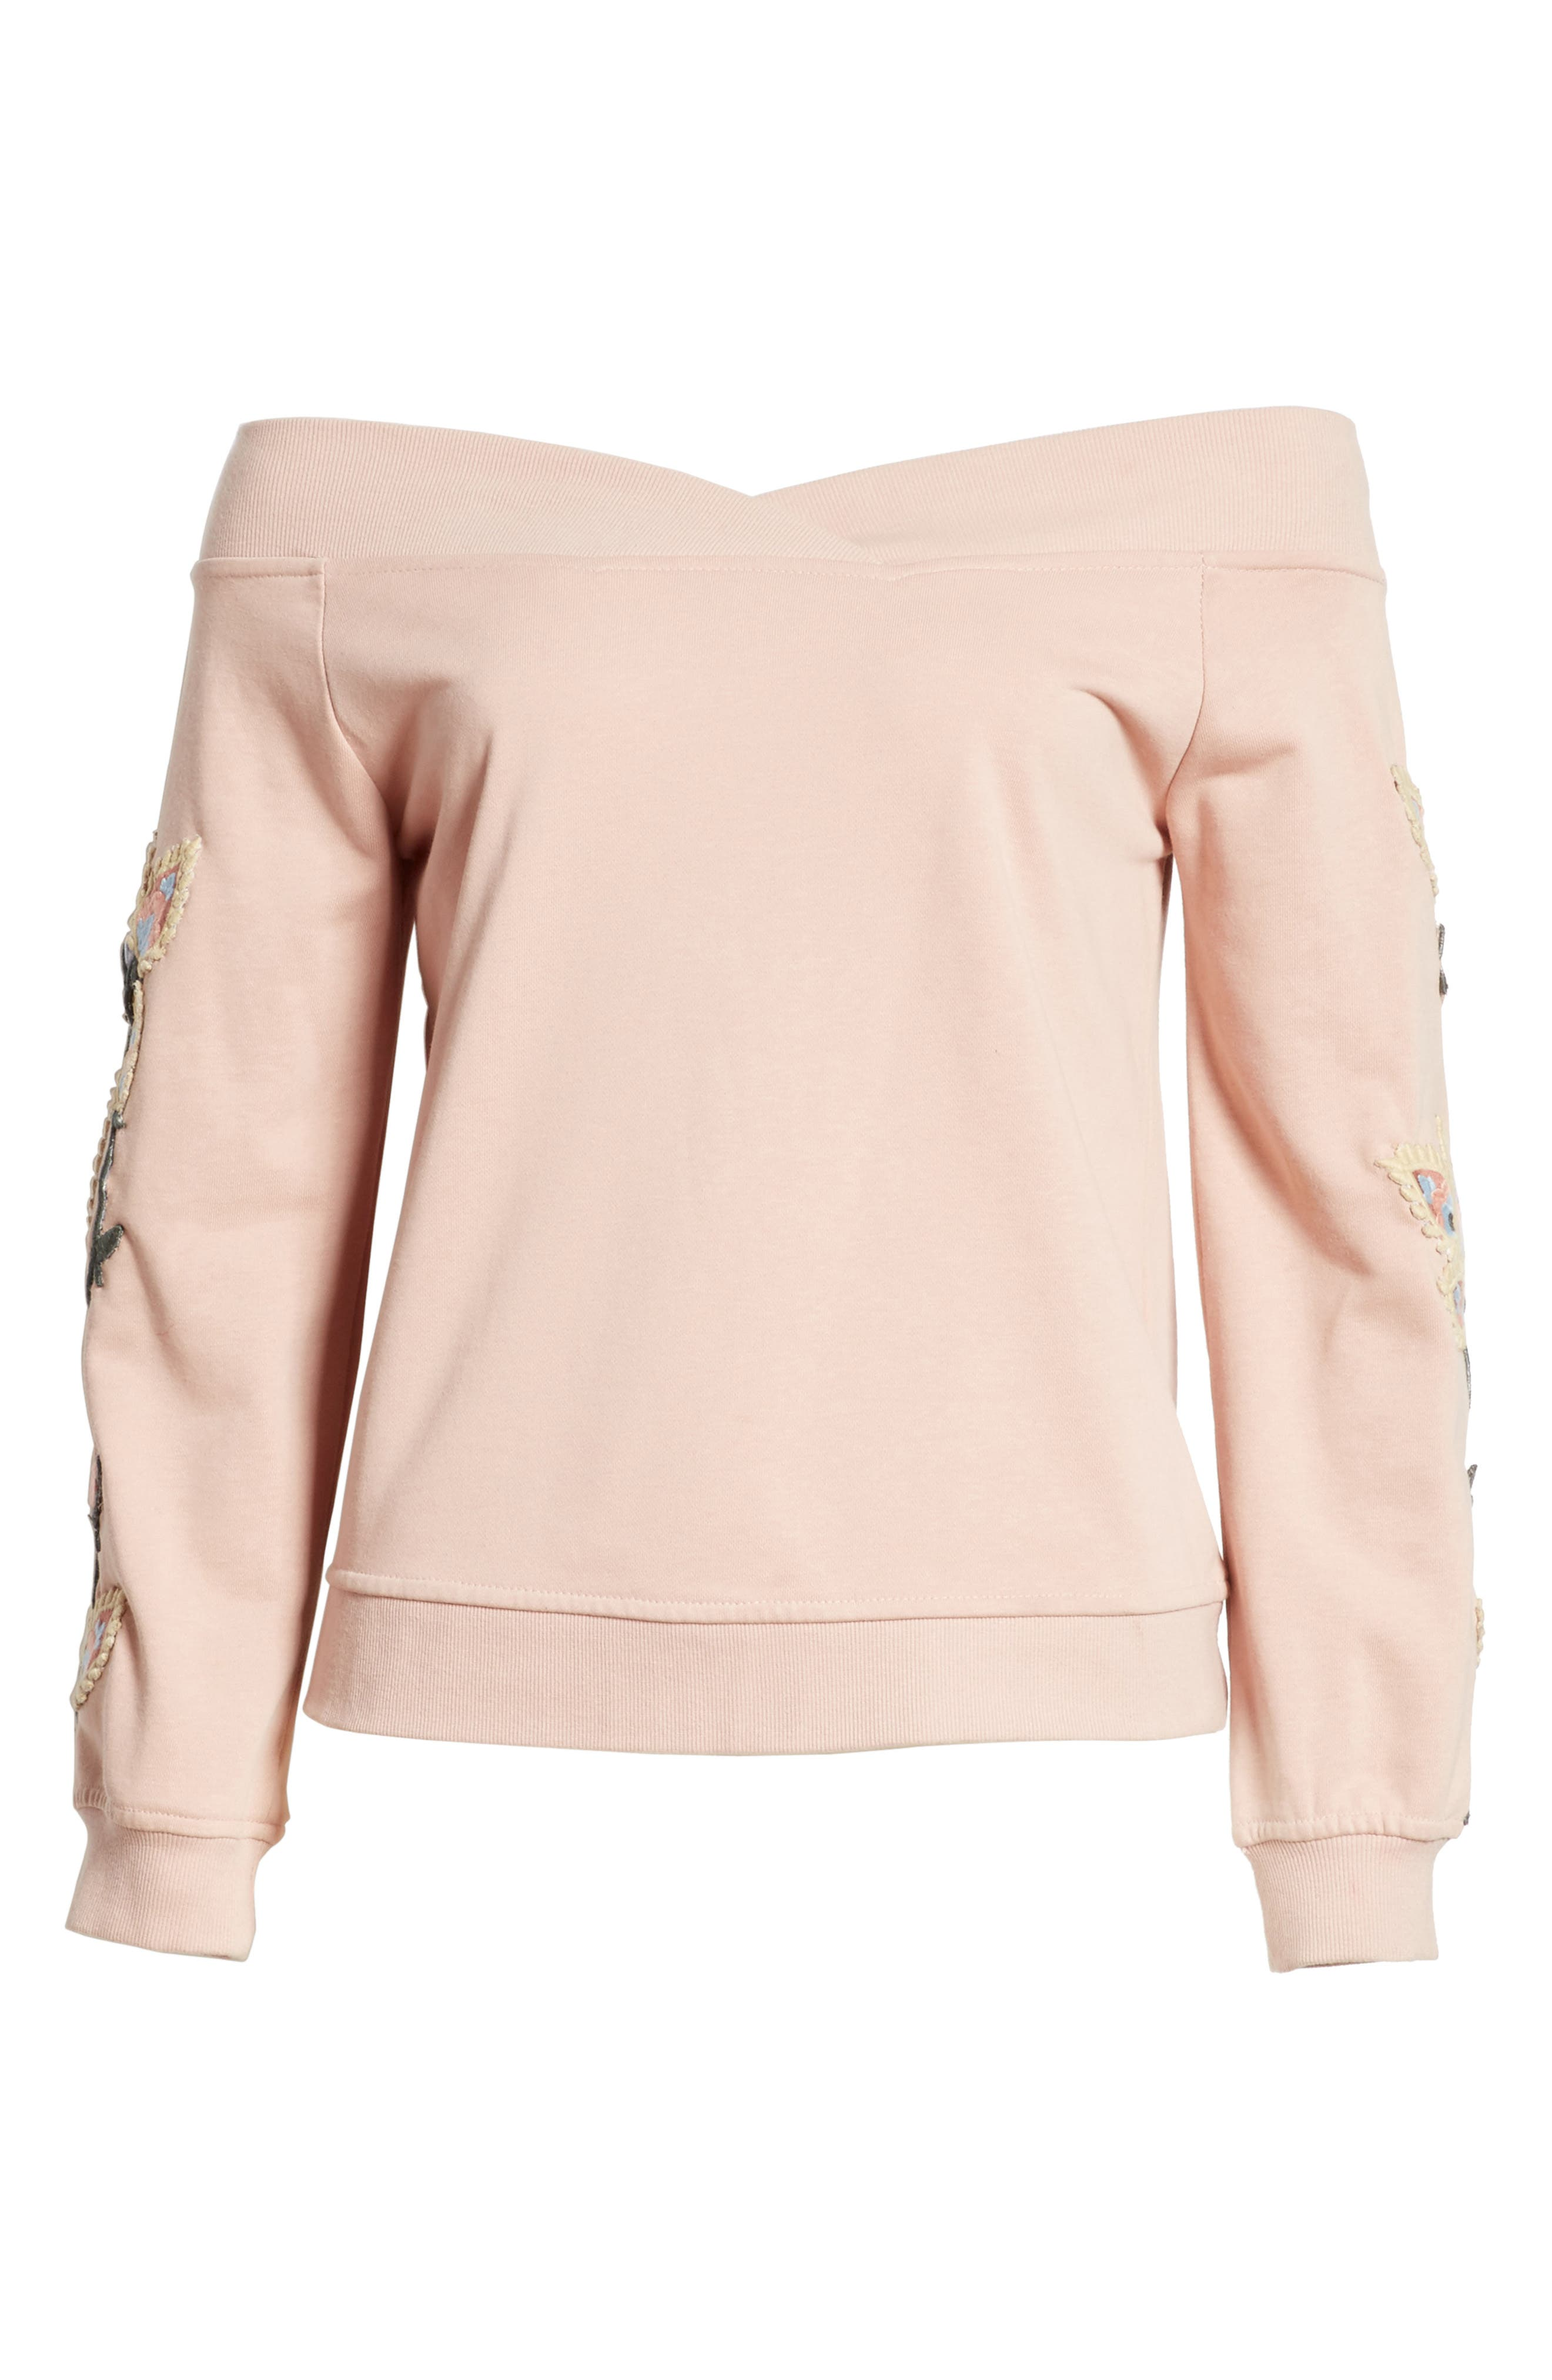 Macey Embroidered Sweatshirt,                             Alternate thumbnail 6, color,                             665